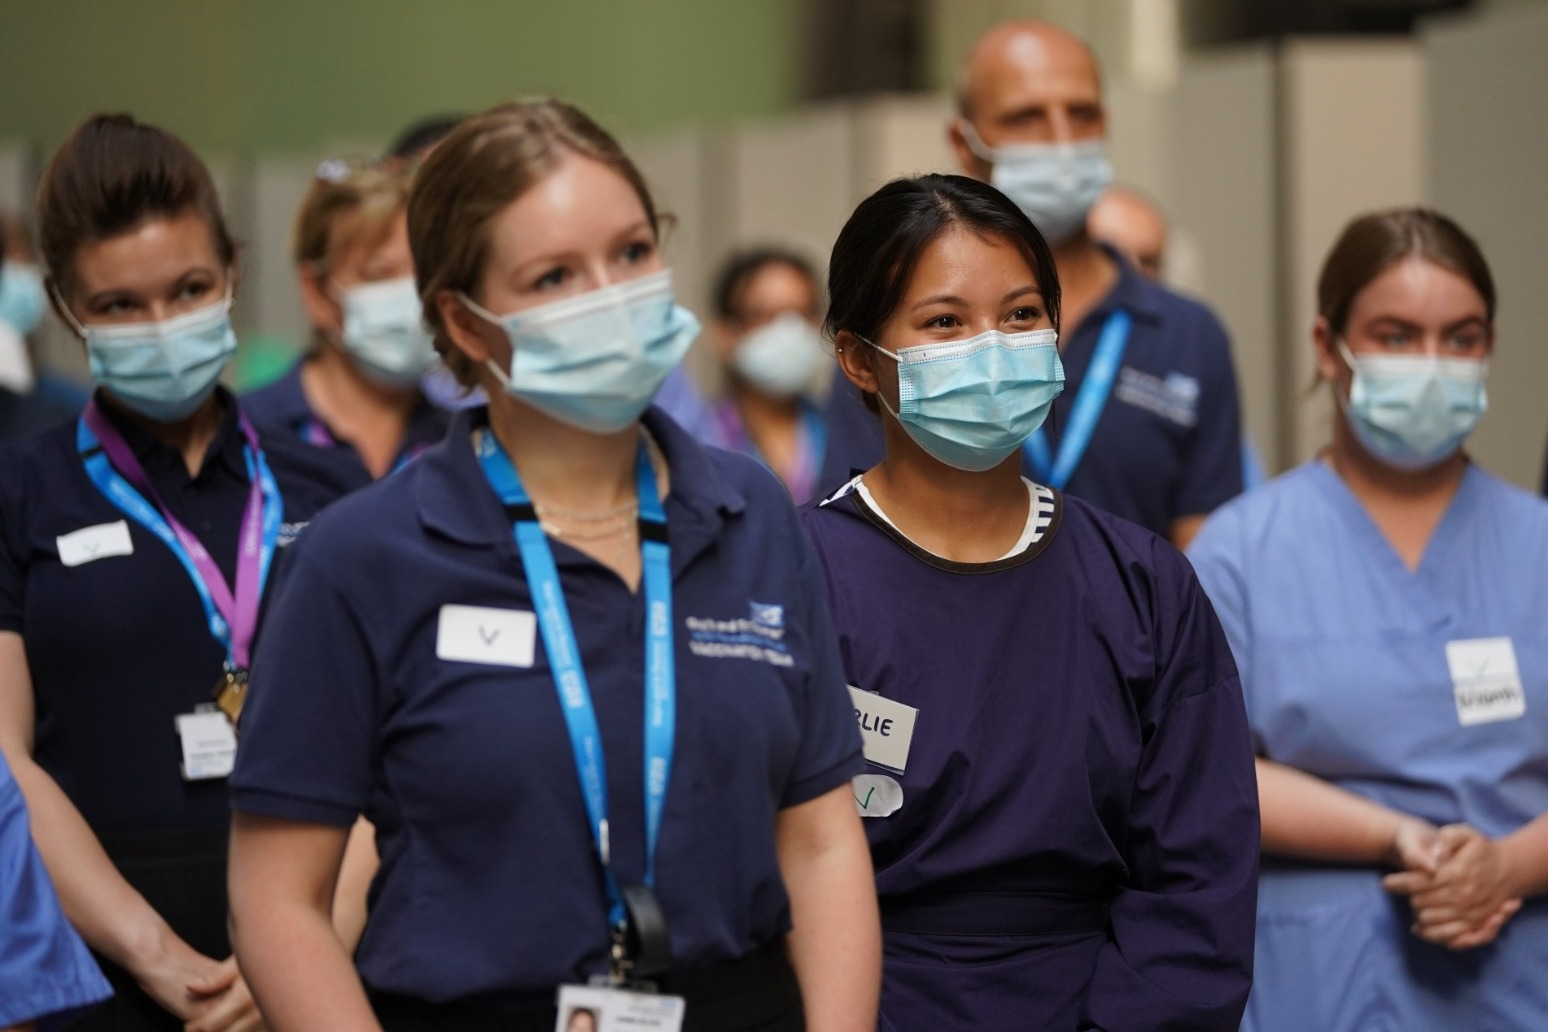 Pressure builds on PM to award long-awaited pay rise to NHS workers